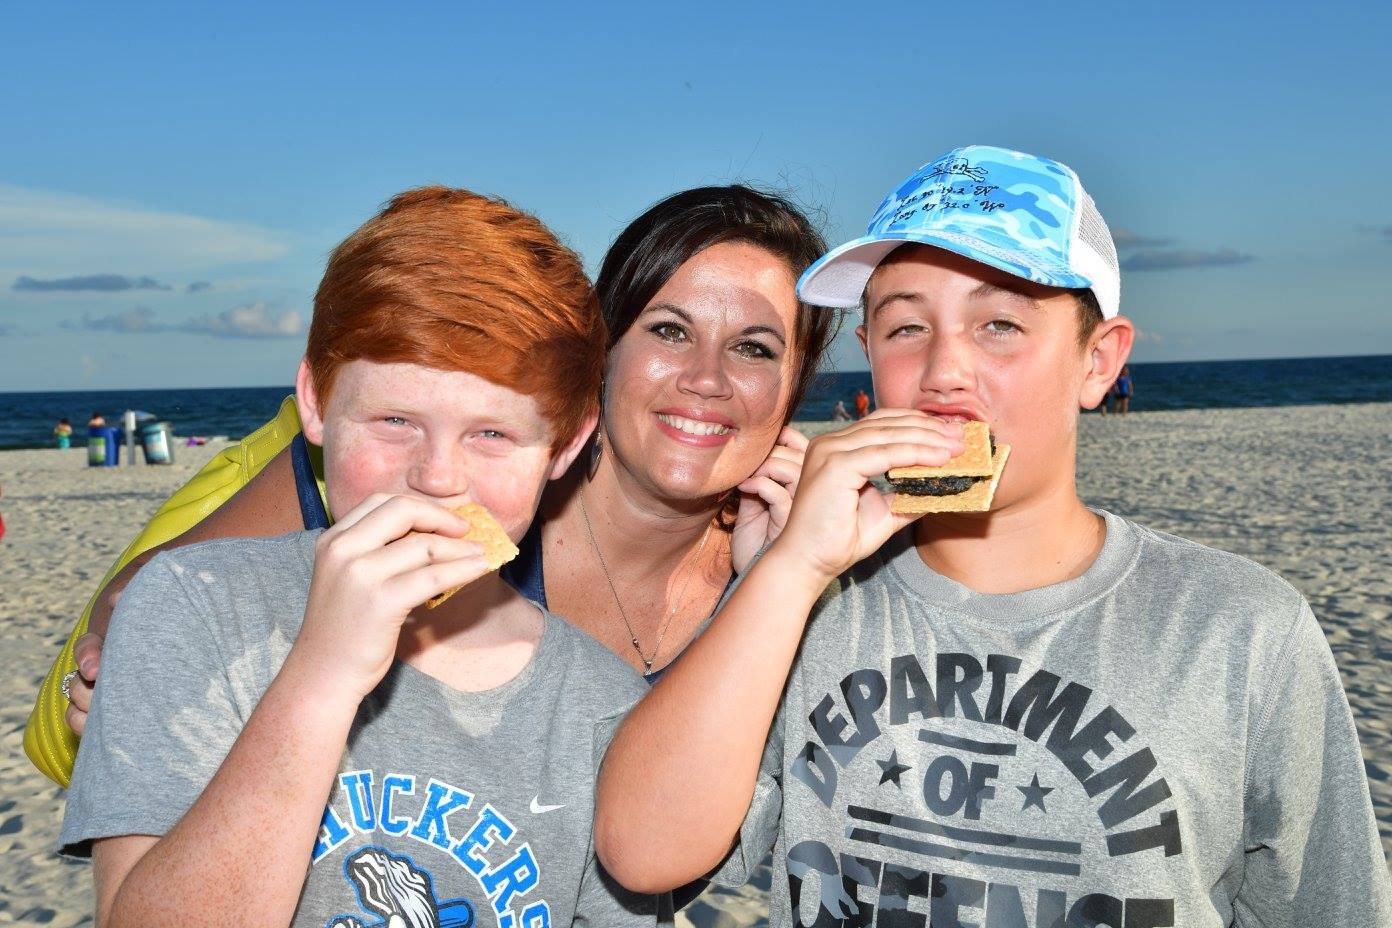 two kids eating a smore